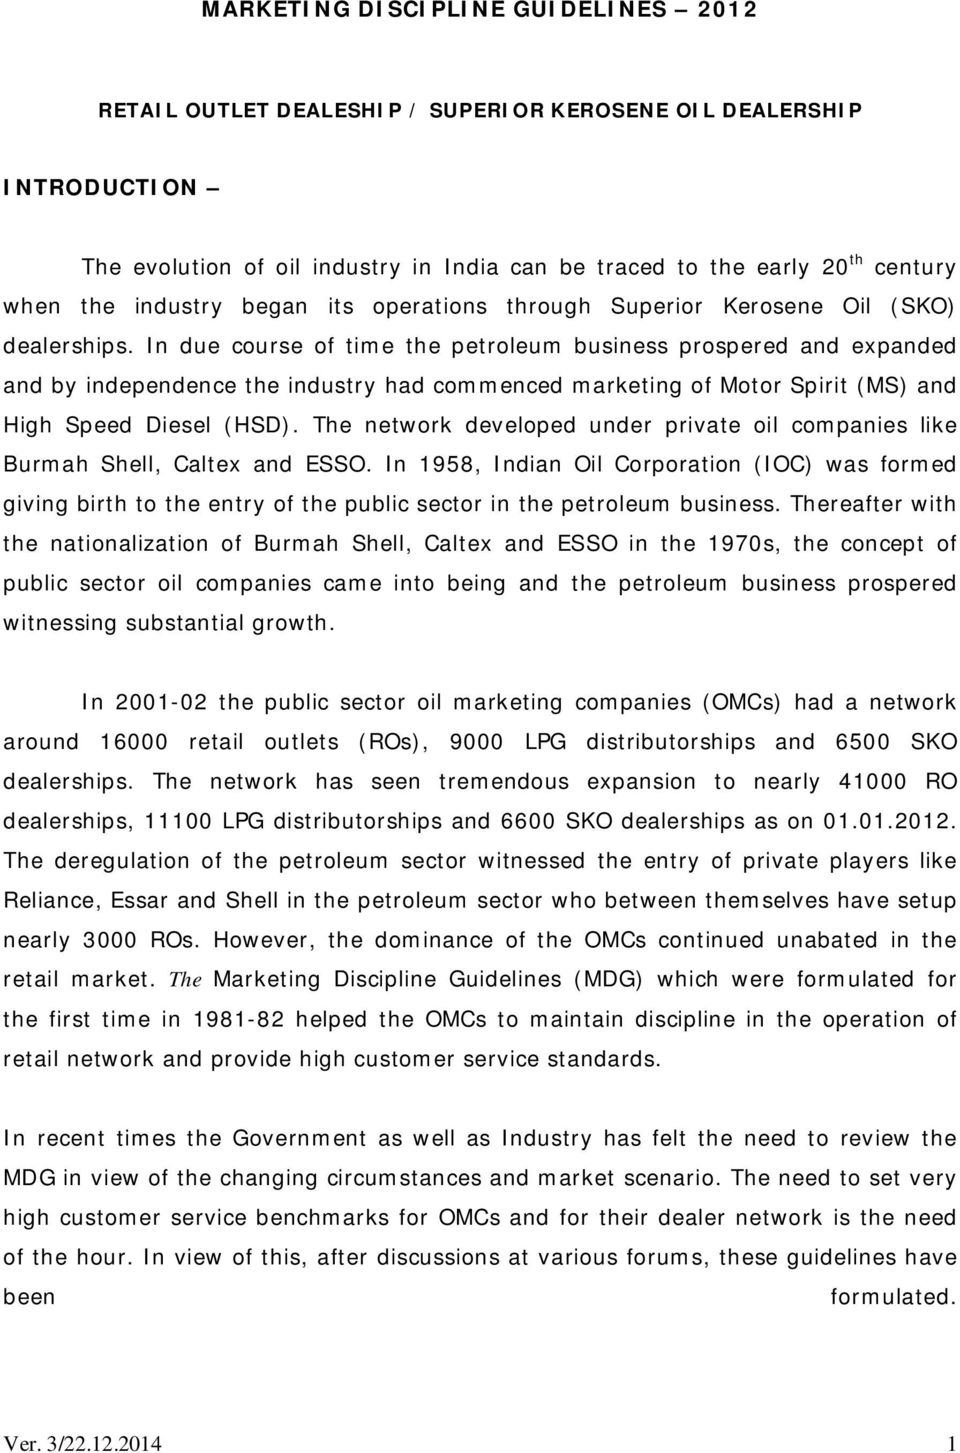 In due course of time the petroleum business prospered and expanded and by independence the industry had commenced marketing of Motor Spirit (MS) and High Speed Diesel (HSD).